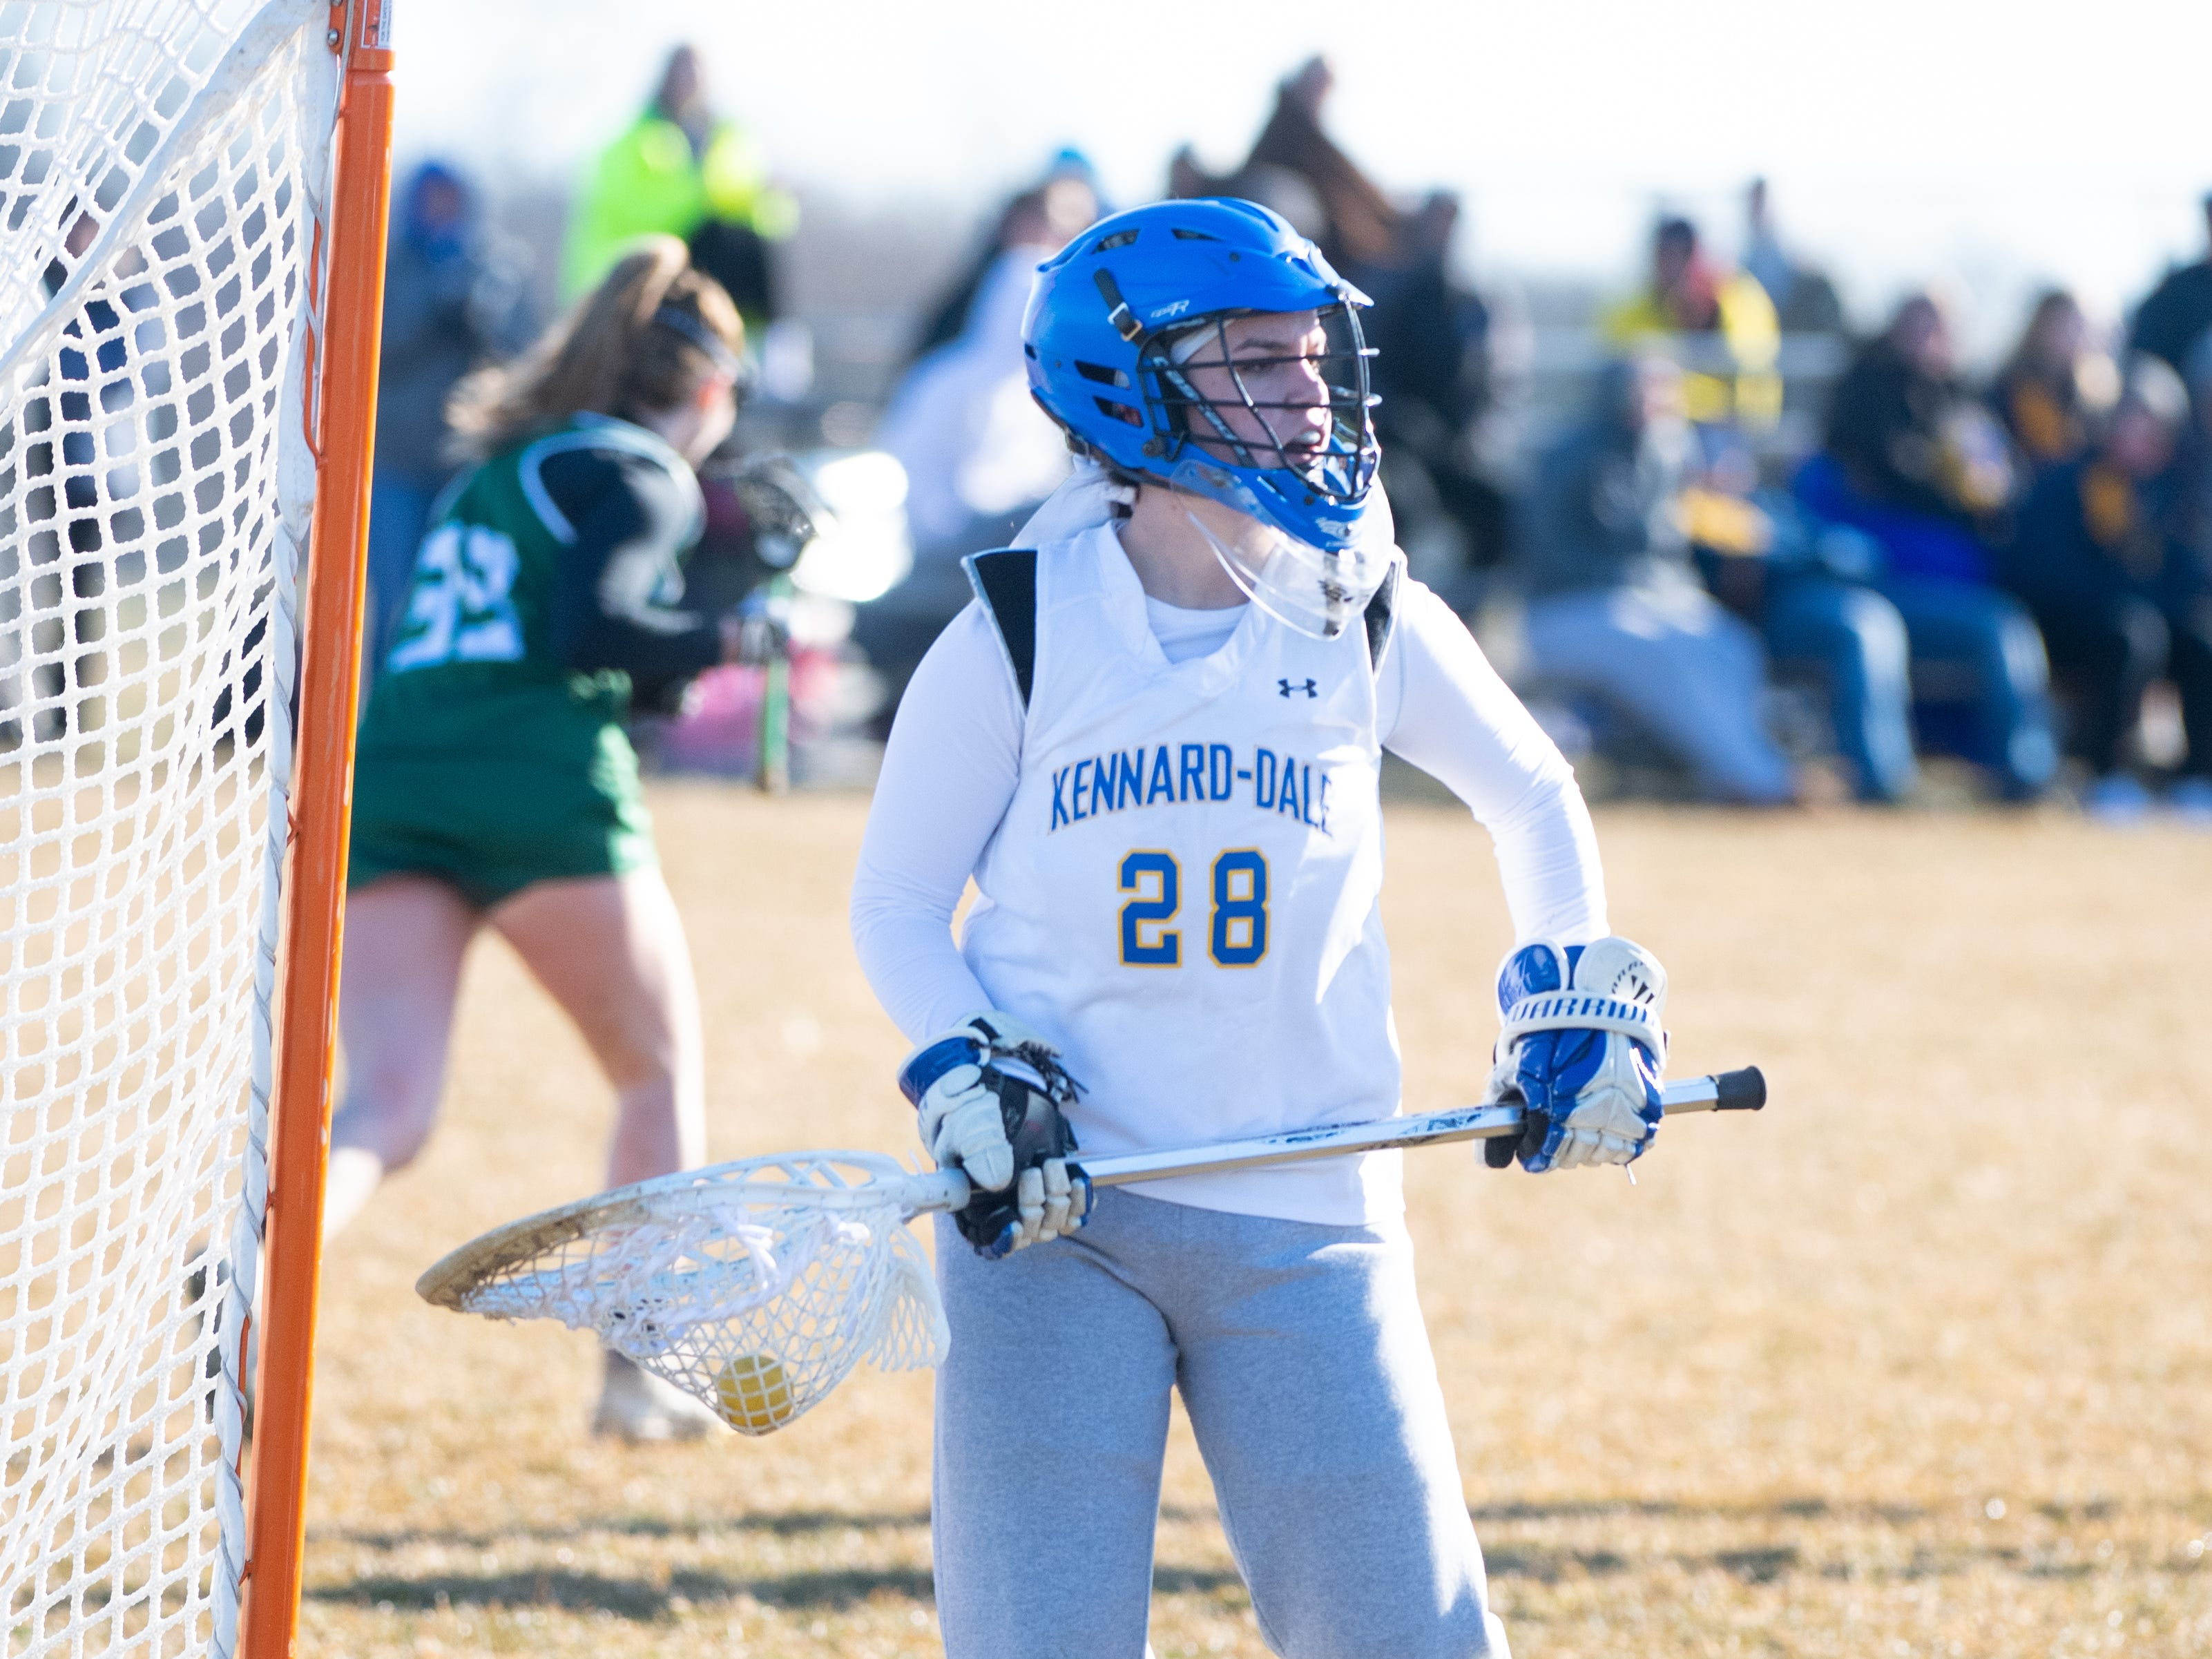 Maria Schneider (28) made the save during the girls' lacrosse game between Kennard-Dale and York Catholic, March 26, 2019 at Kennard-Dale High School. The Fighting Irish defeated the Rams 10 to 9.